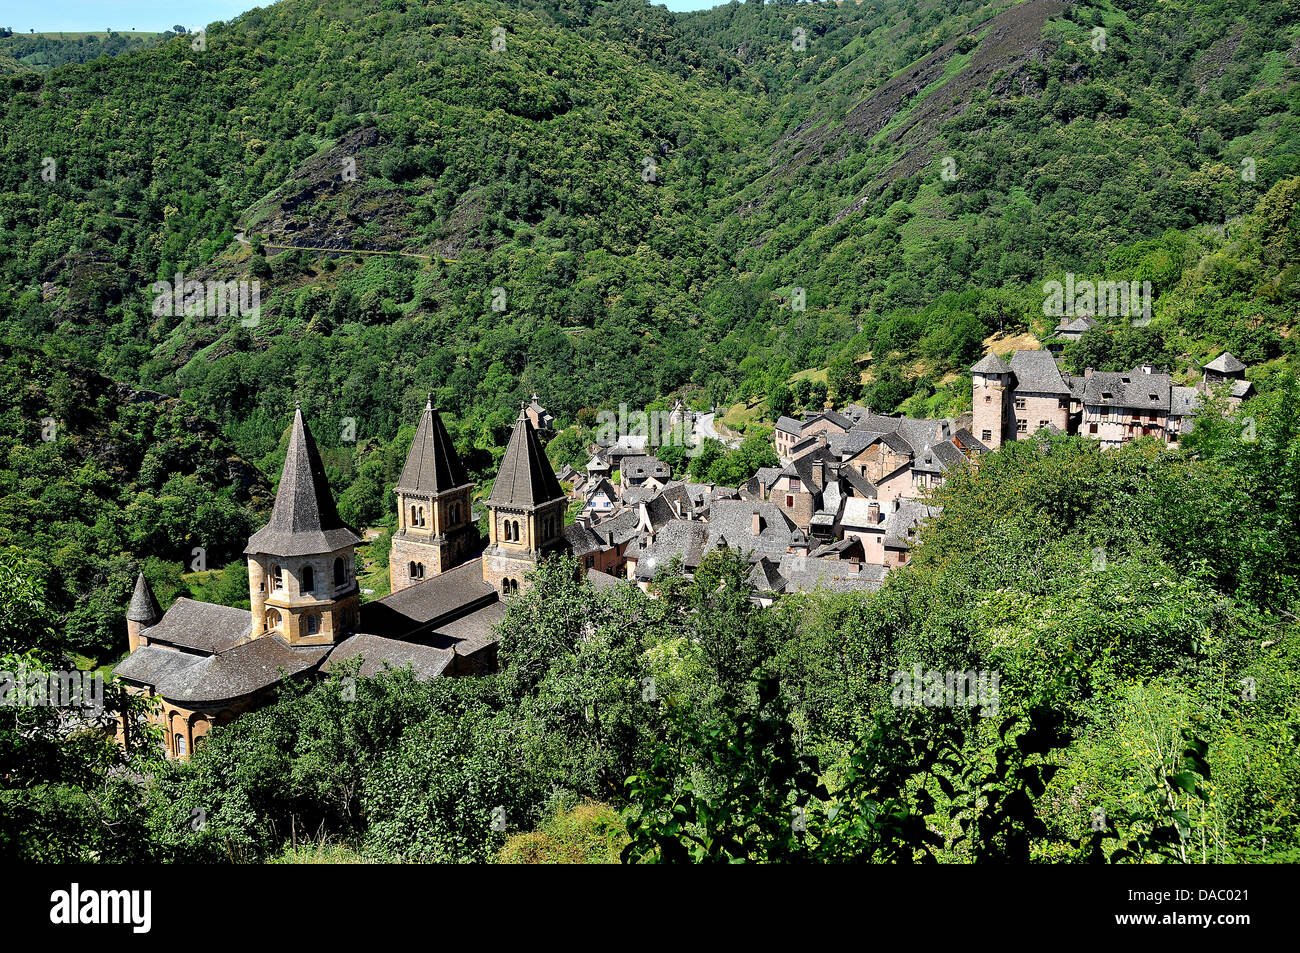 Village of Conques in the mountains, Aveyron, Midi-Pyrenees, France, Europe - Stock Image